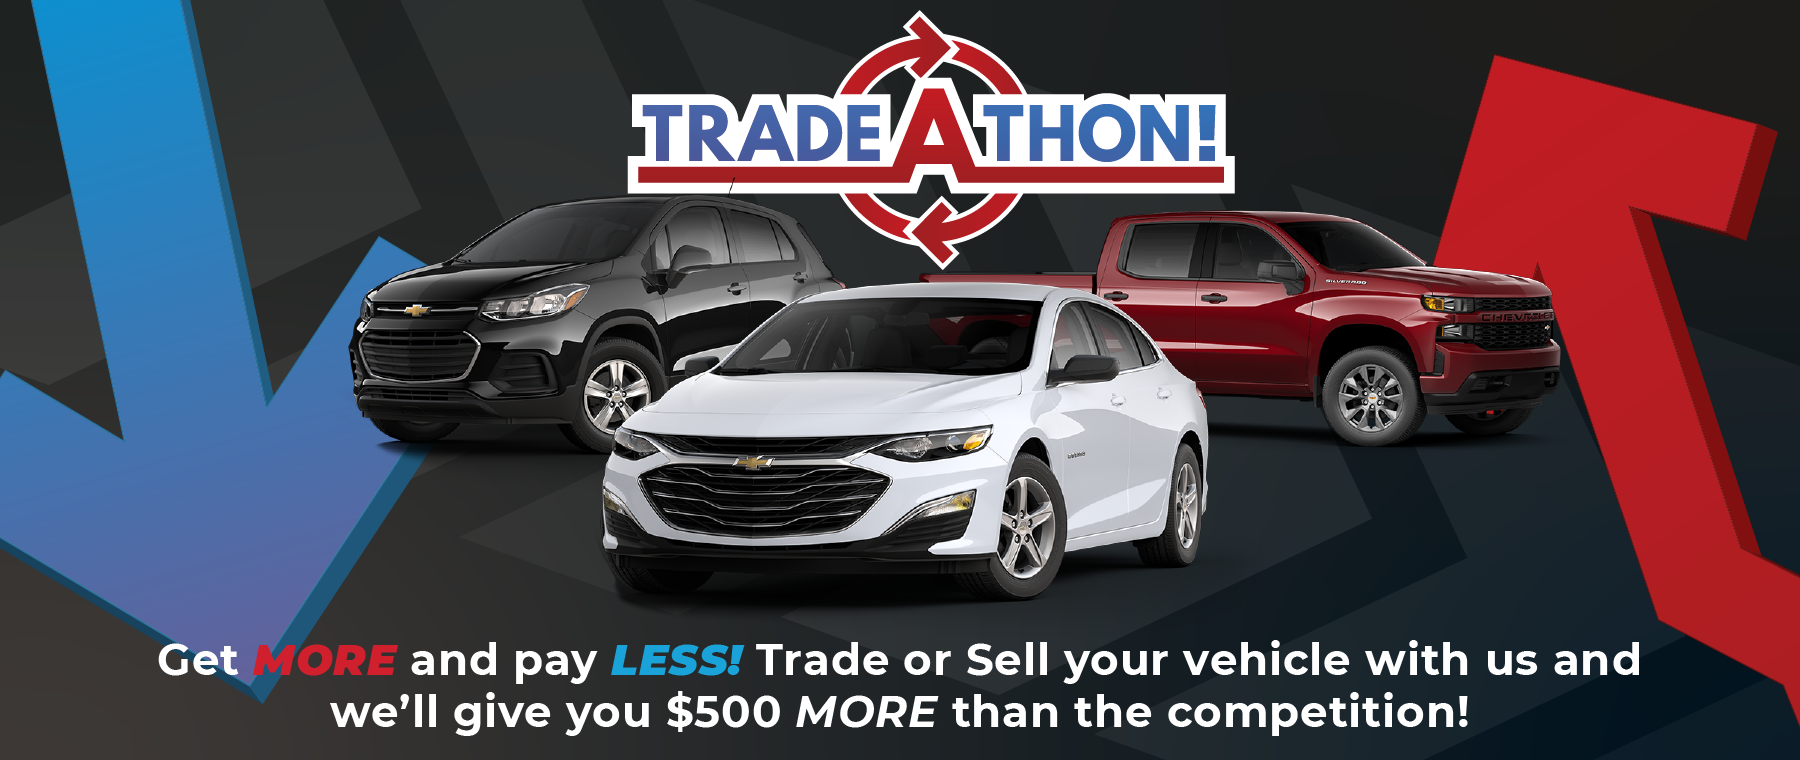 Generic Trade-A-Thon_Chevy_1800x760